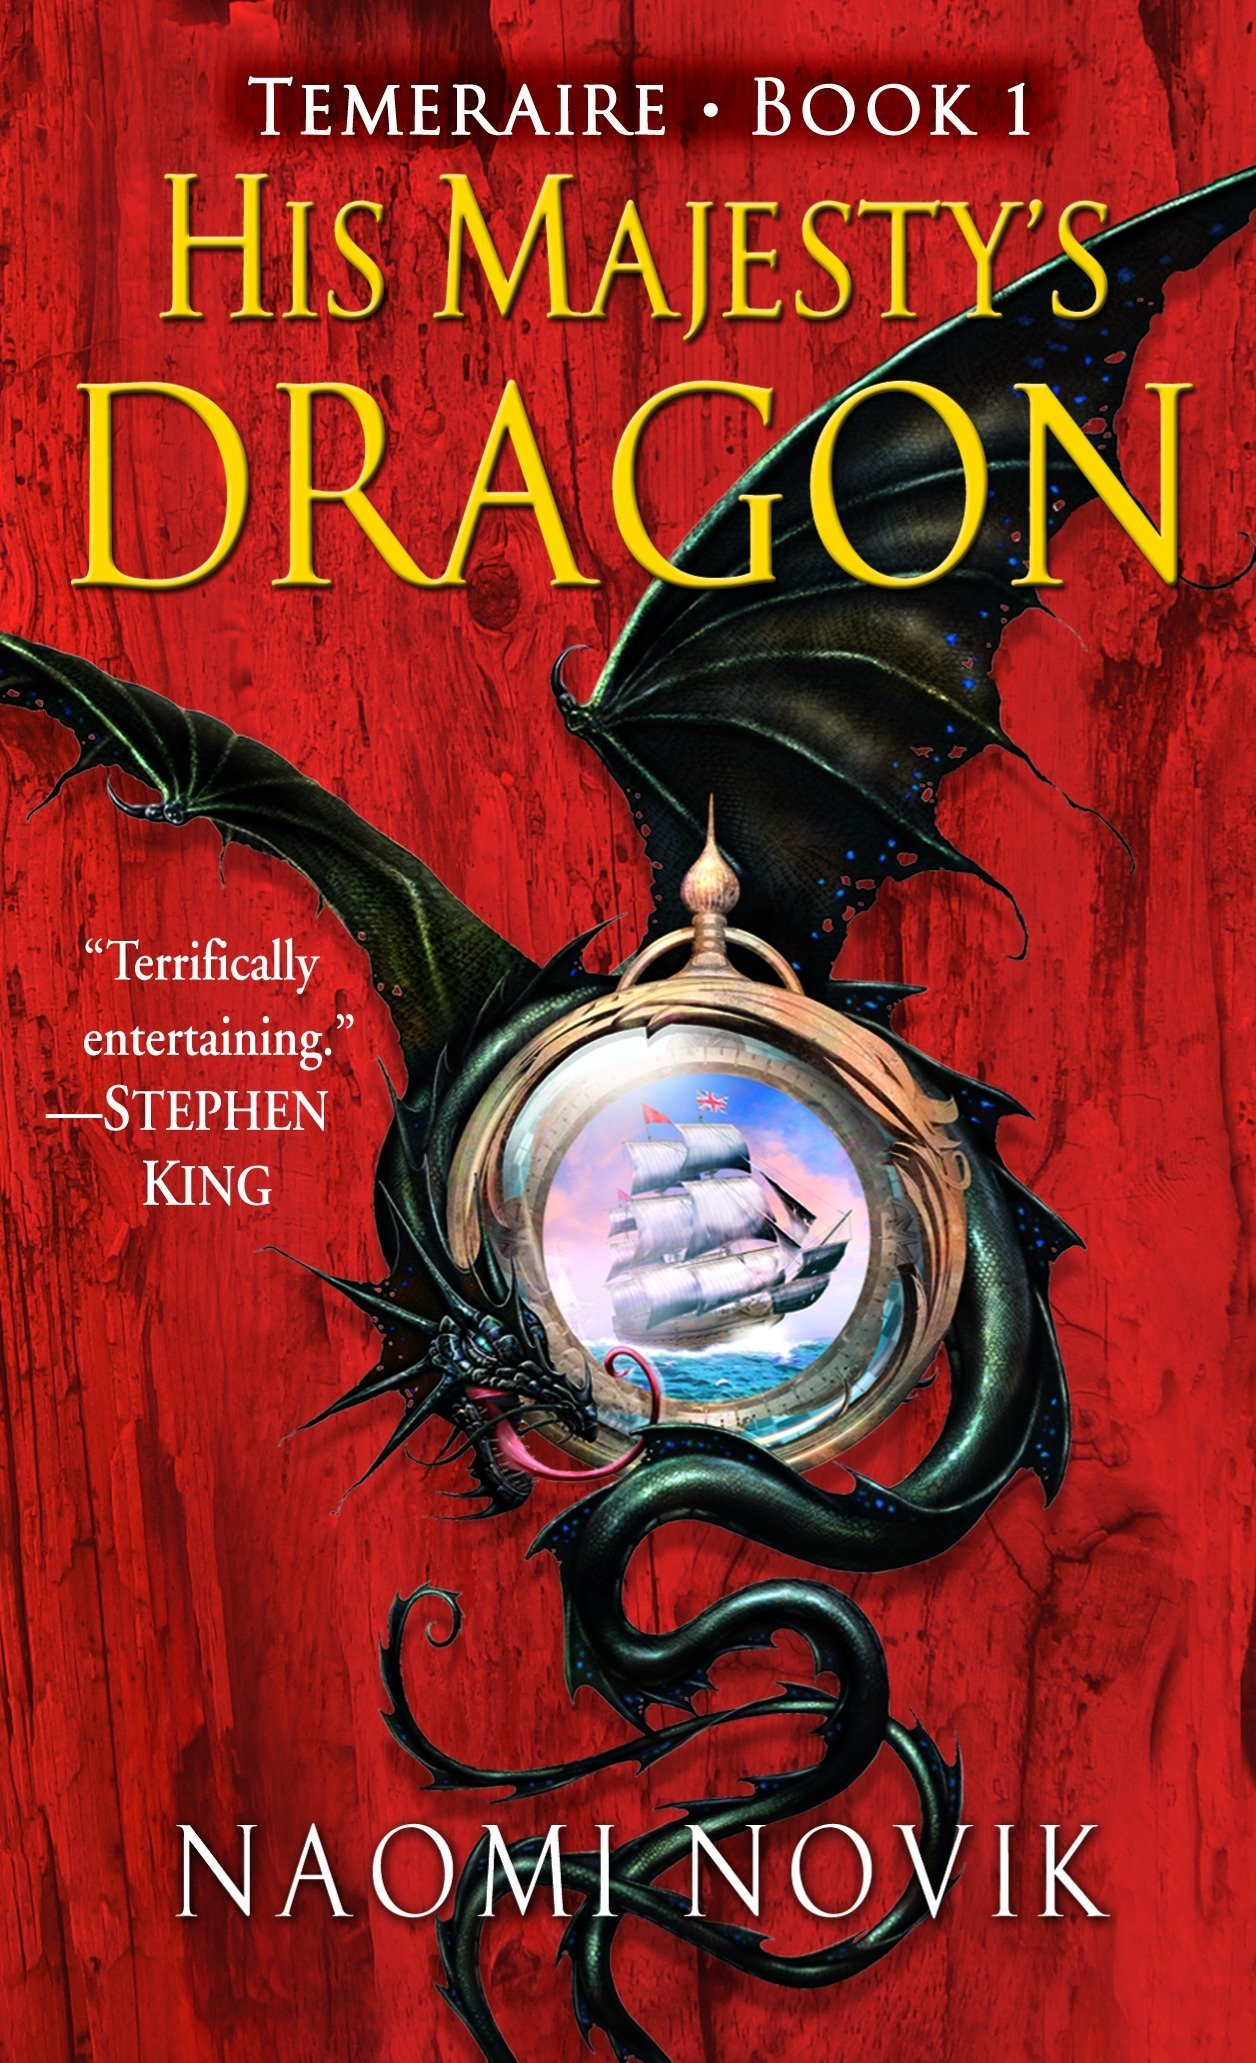 Image result for his majesty's dragon temeraire